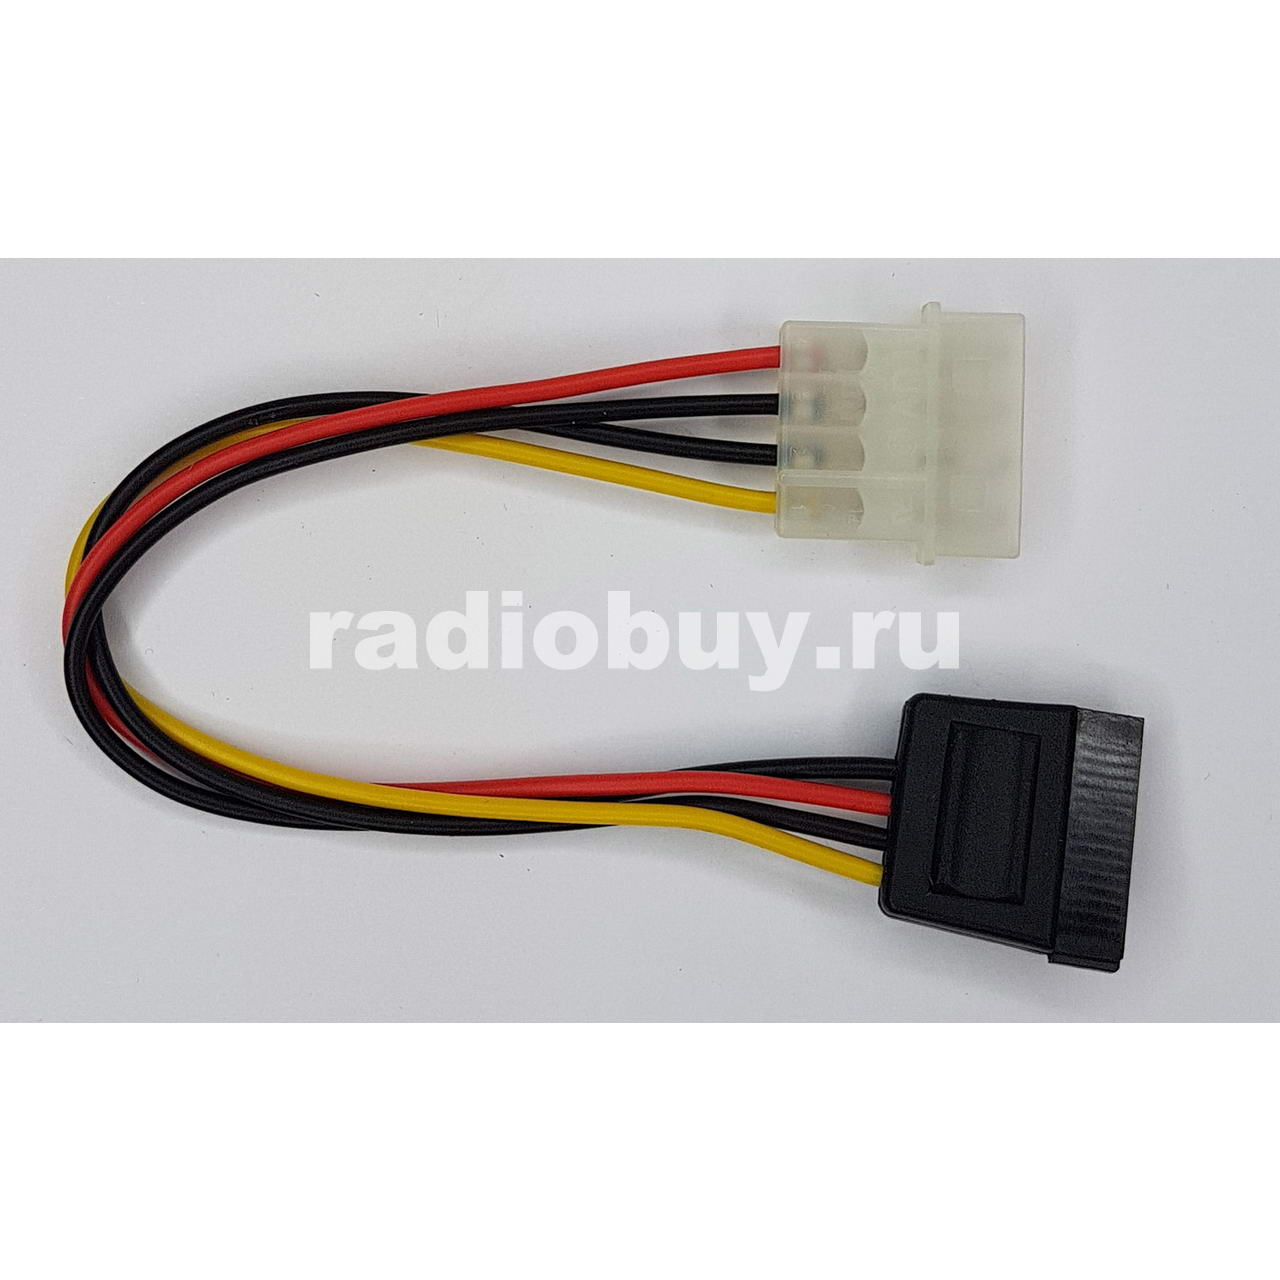 Переходник FinePower Molex - SATA